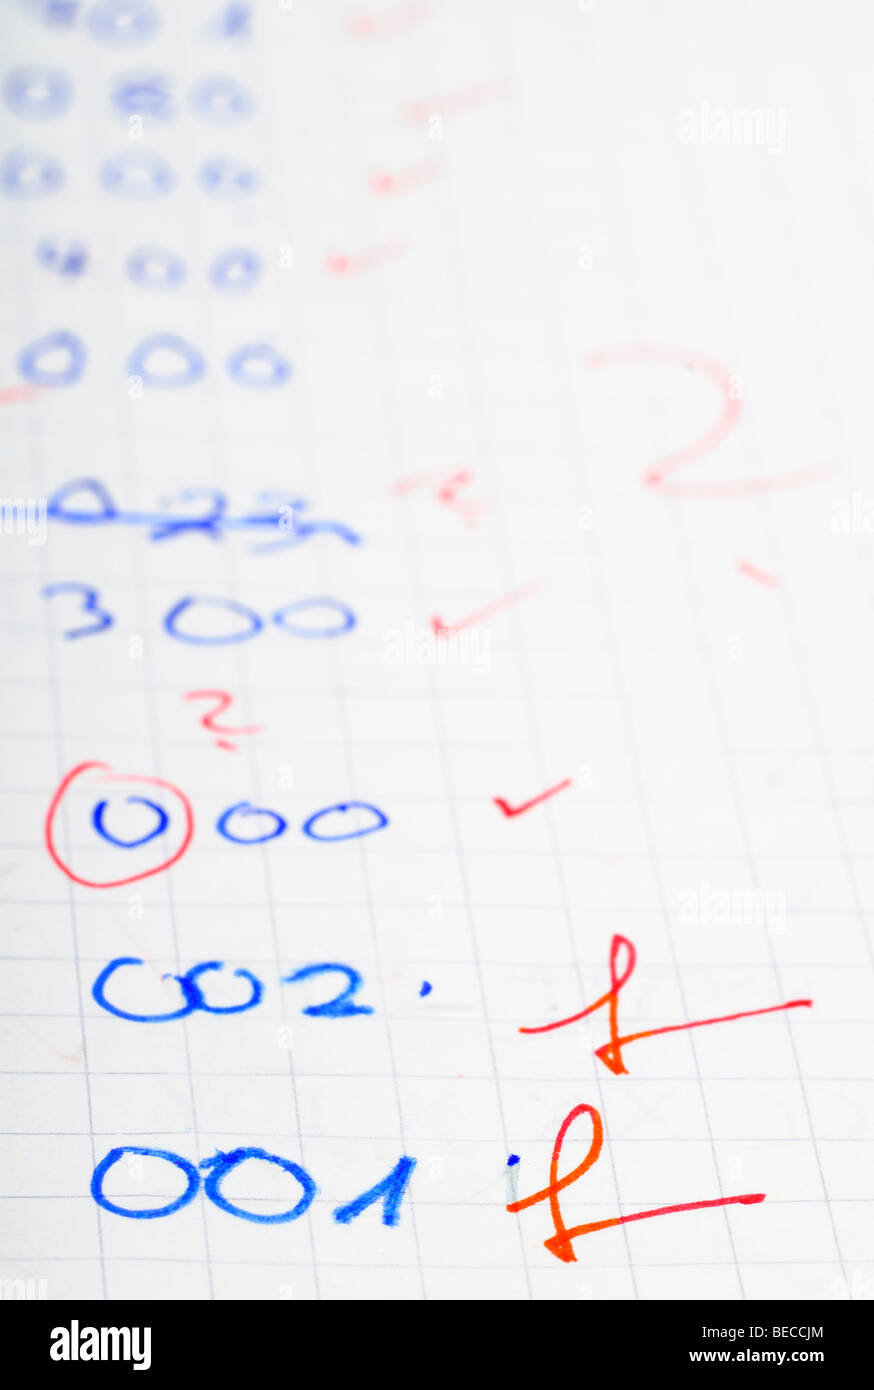 Wrongly solved geometry task of a Maths classroom test - Stock Image